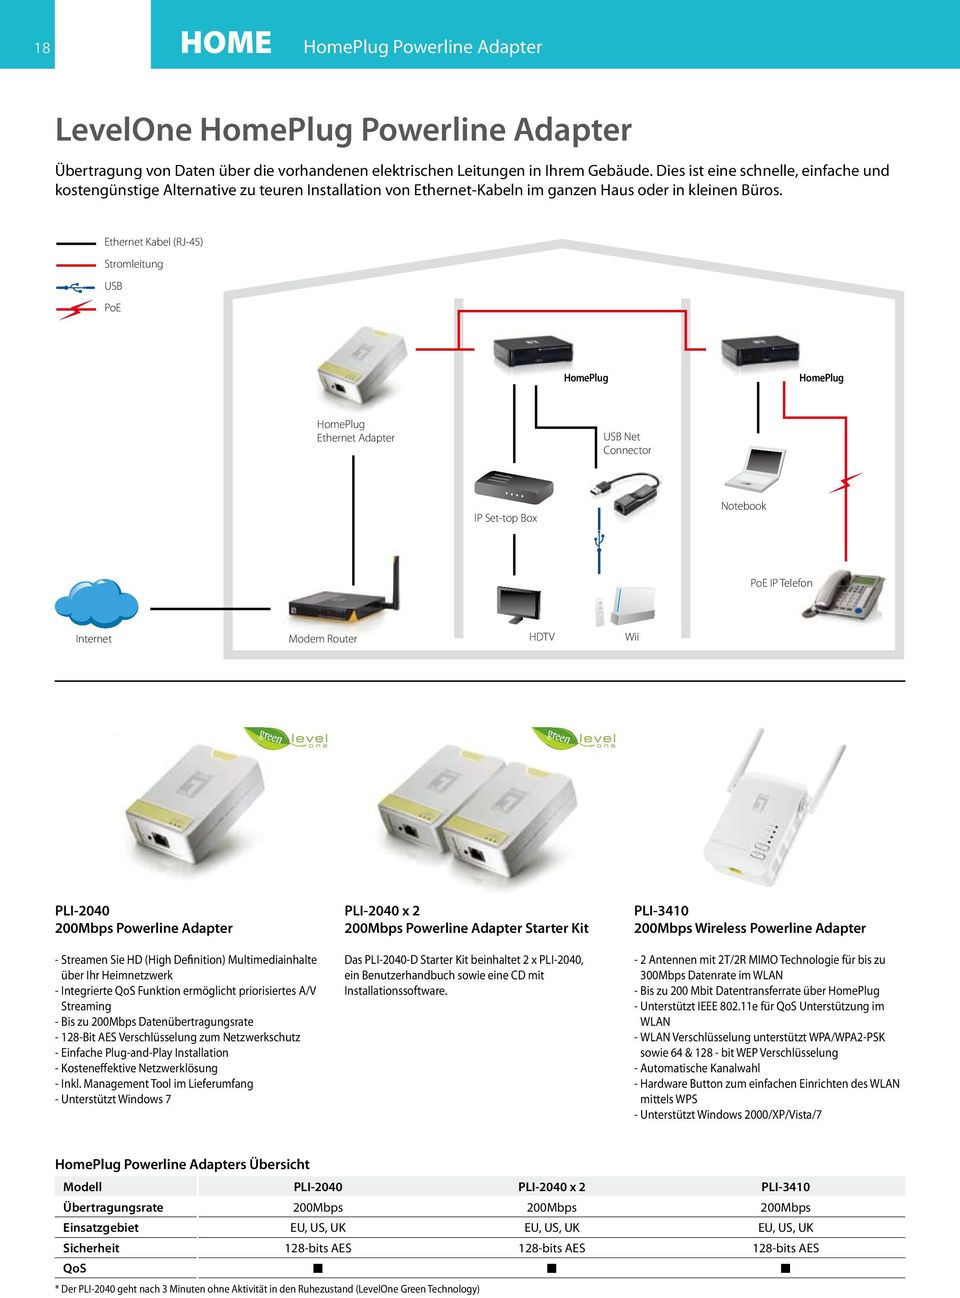 Ethernet Kabel (RJ-45) Stromleitung USB PoE HomePlug HomePlug HomePlug Ethernet Adapter USB Net Connector IP Set-top Box Notebook PoE IP Telefon Internet Modem Router HDTV Wii PLI-2040 200Mbps